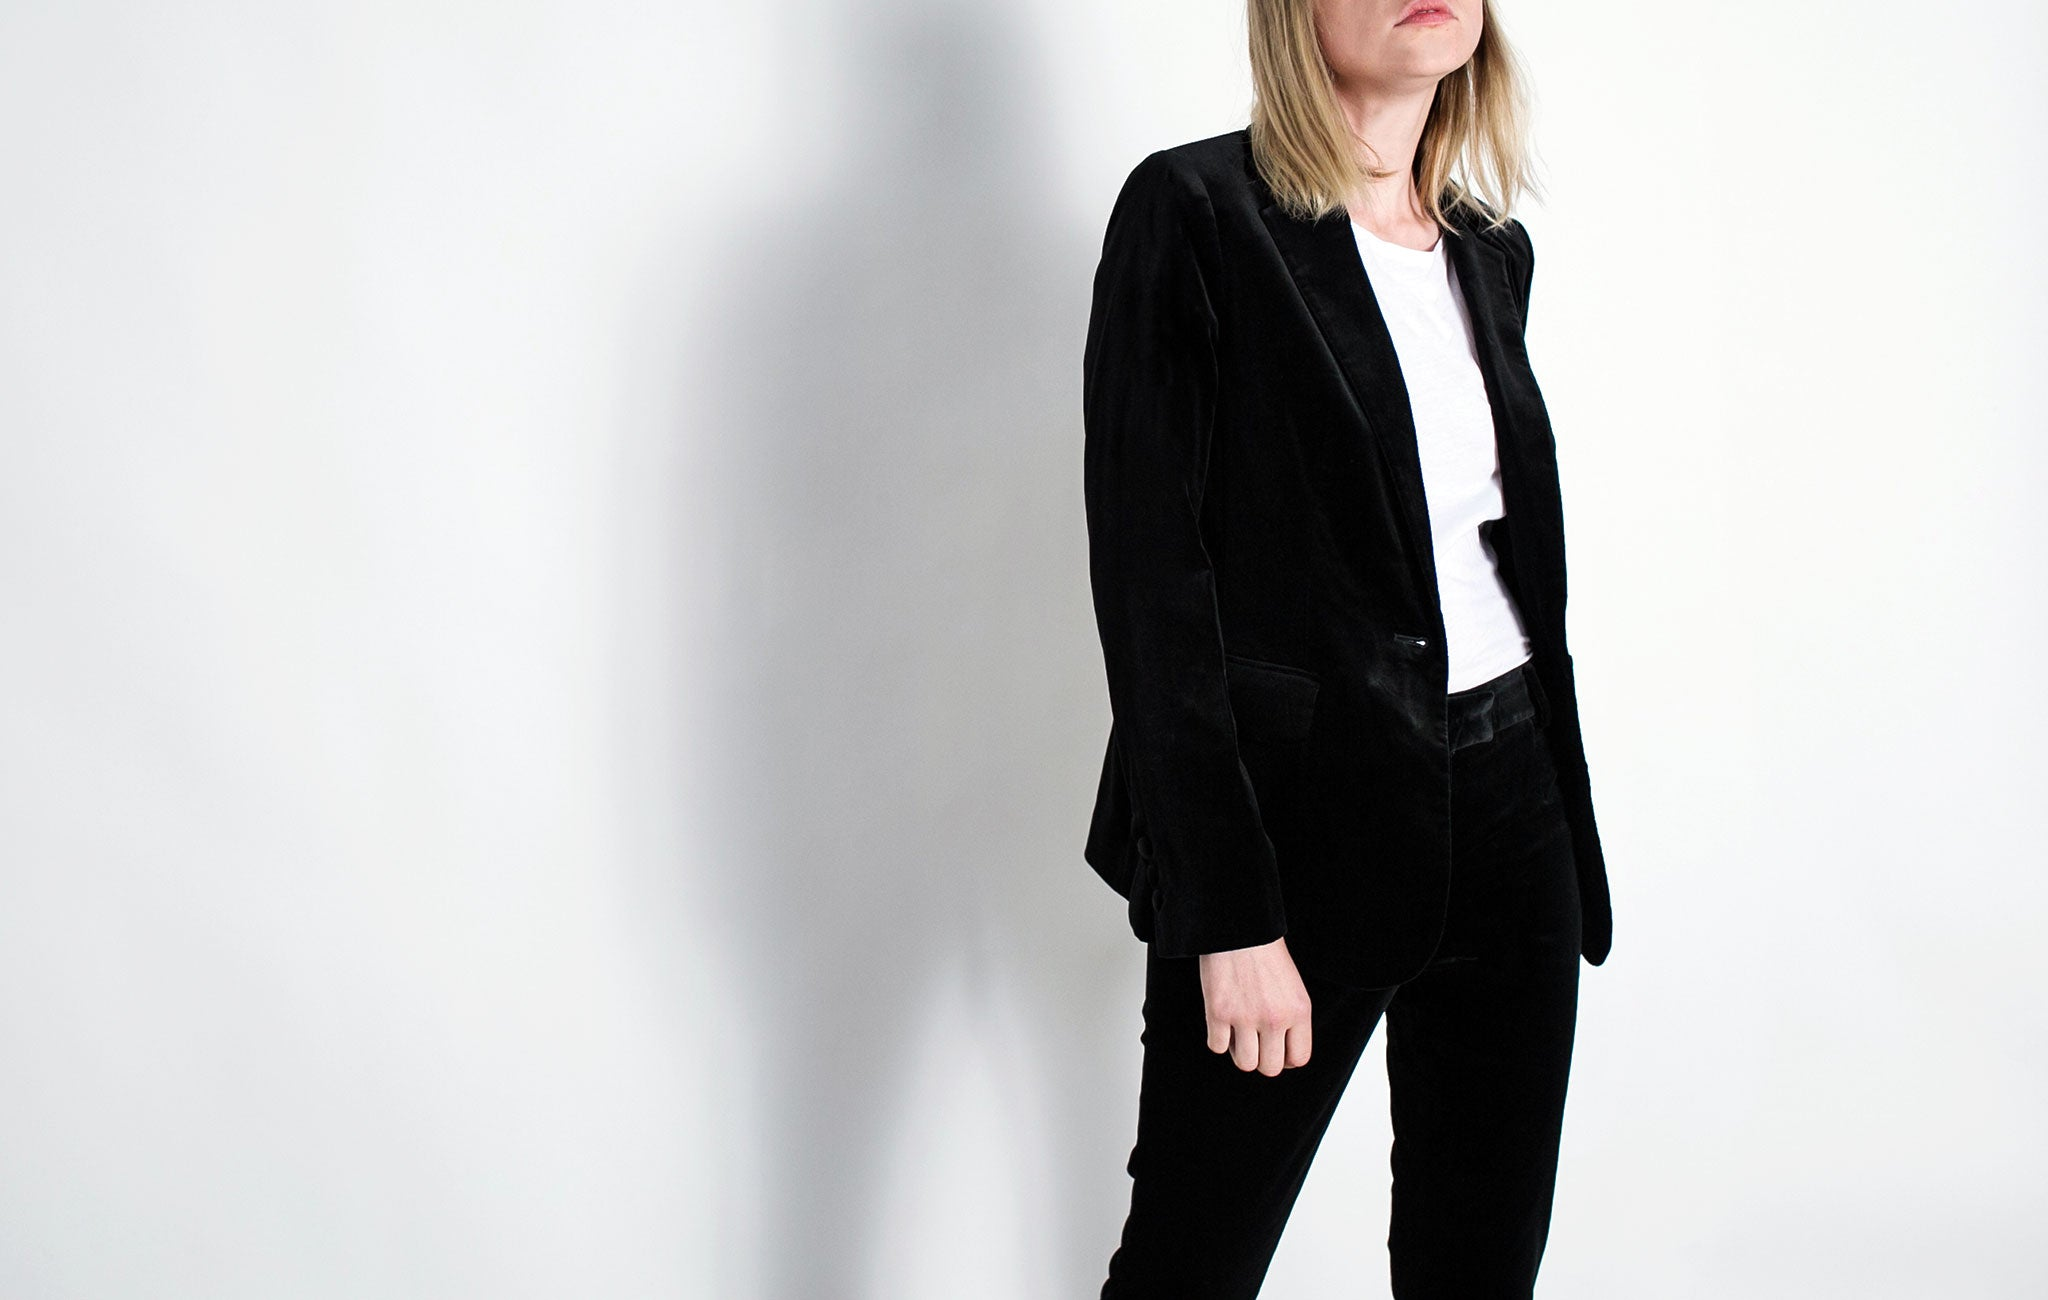 Frame denim velvet on trend minimalist suit from The UNDONE